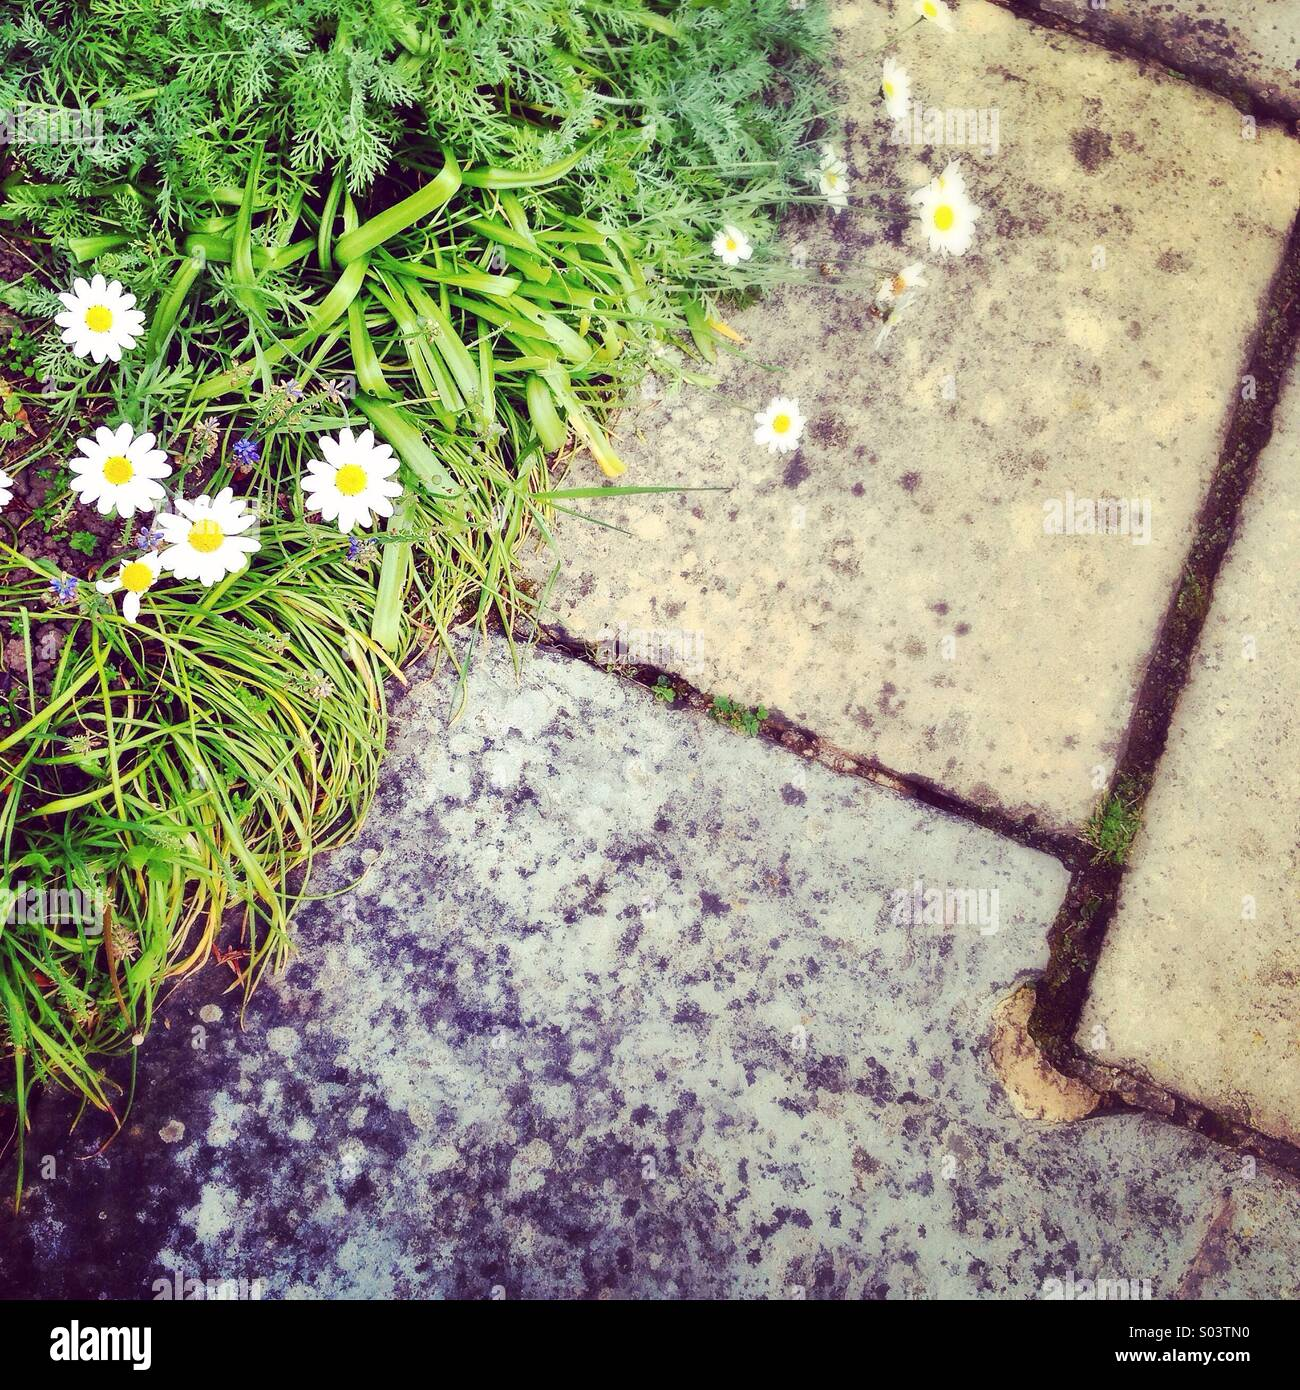 Daisies by a paved path. - Stock Image